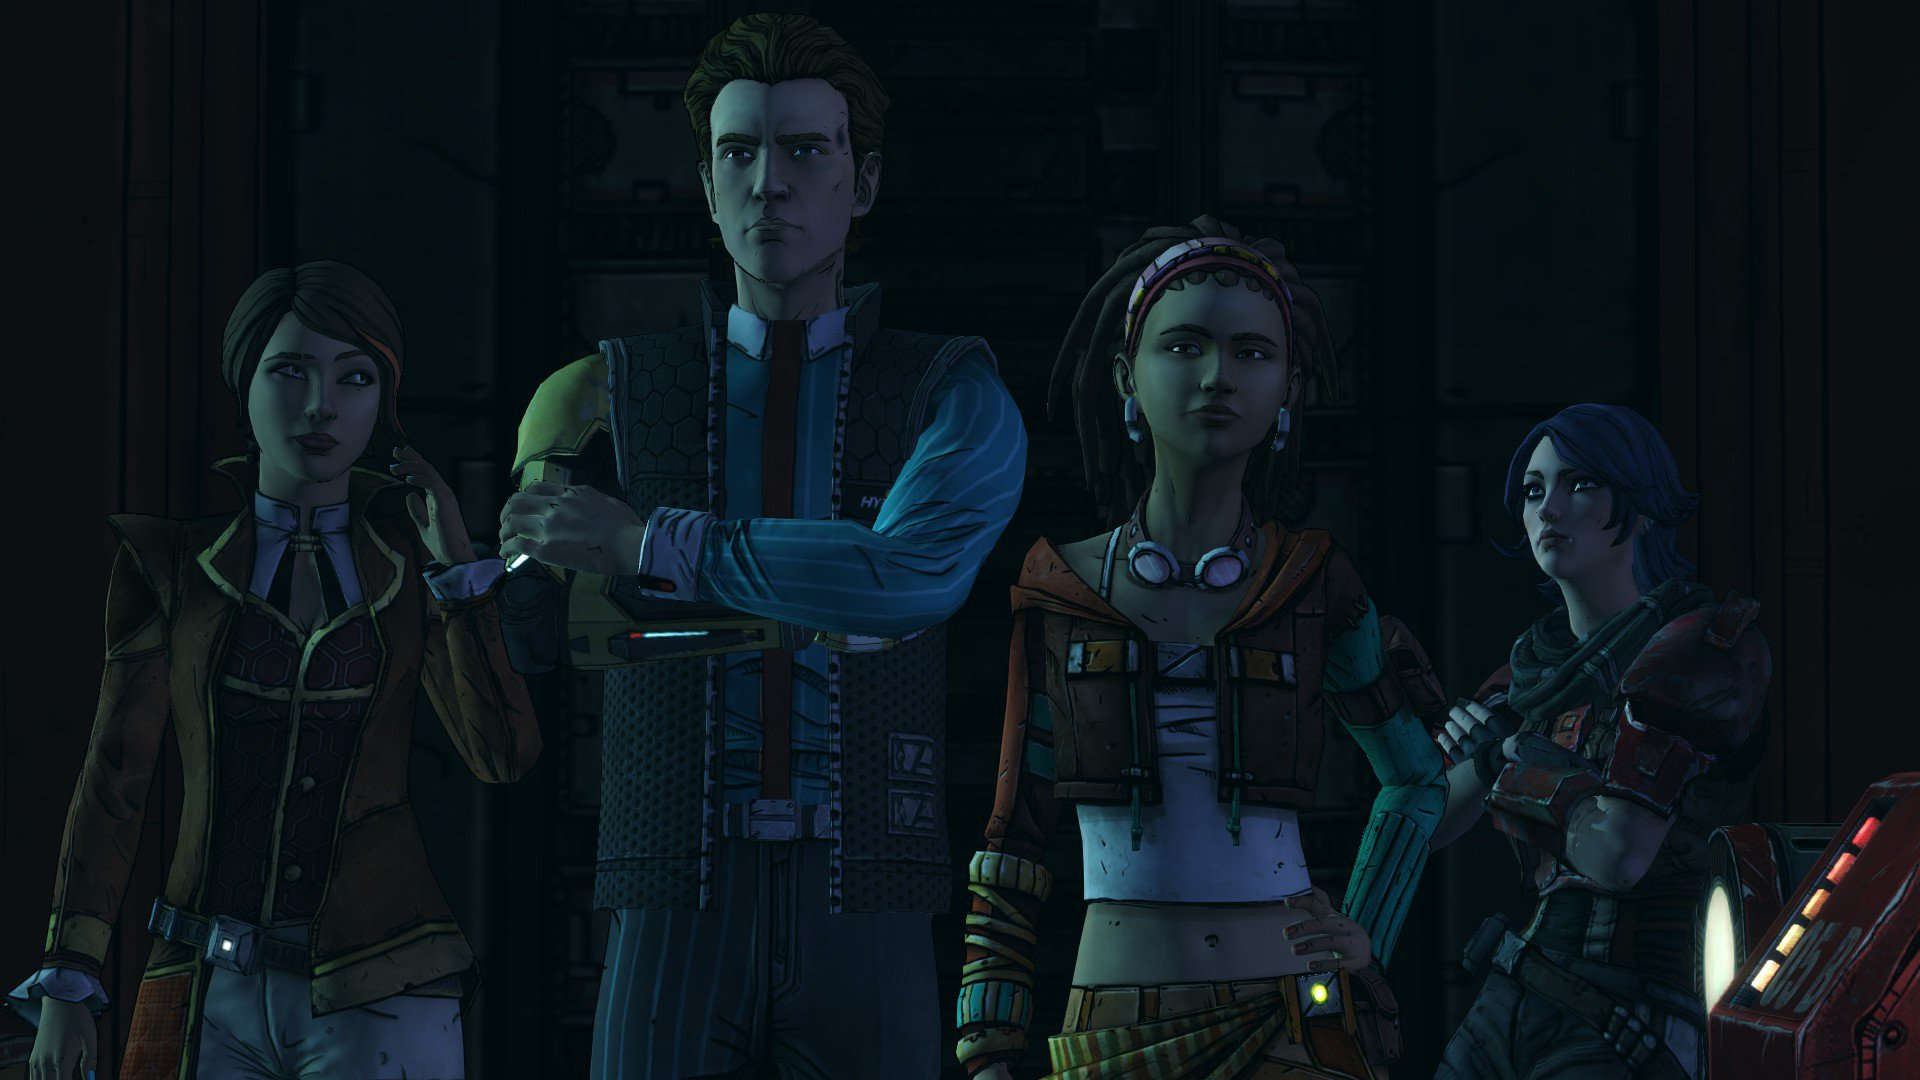 tales-from-the-borderlands-episode-3-catch-a-ride-3